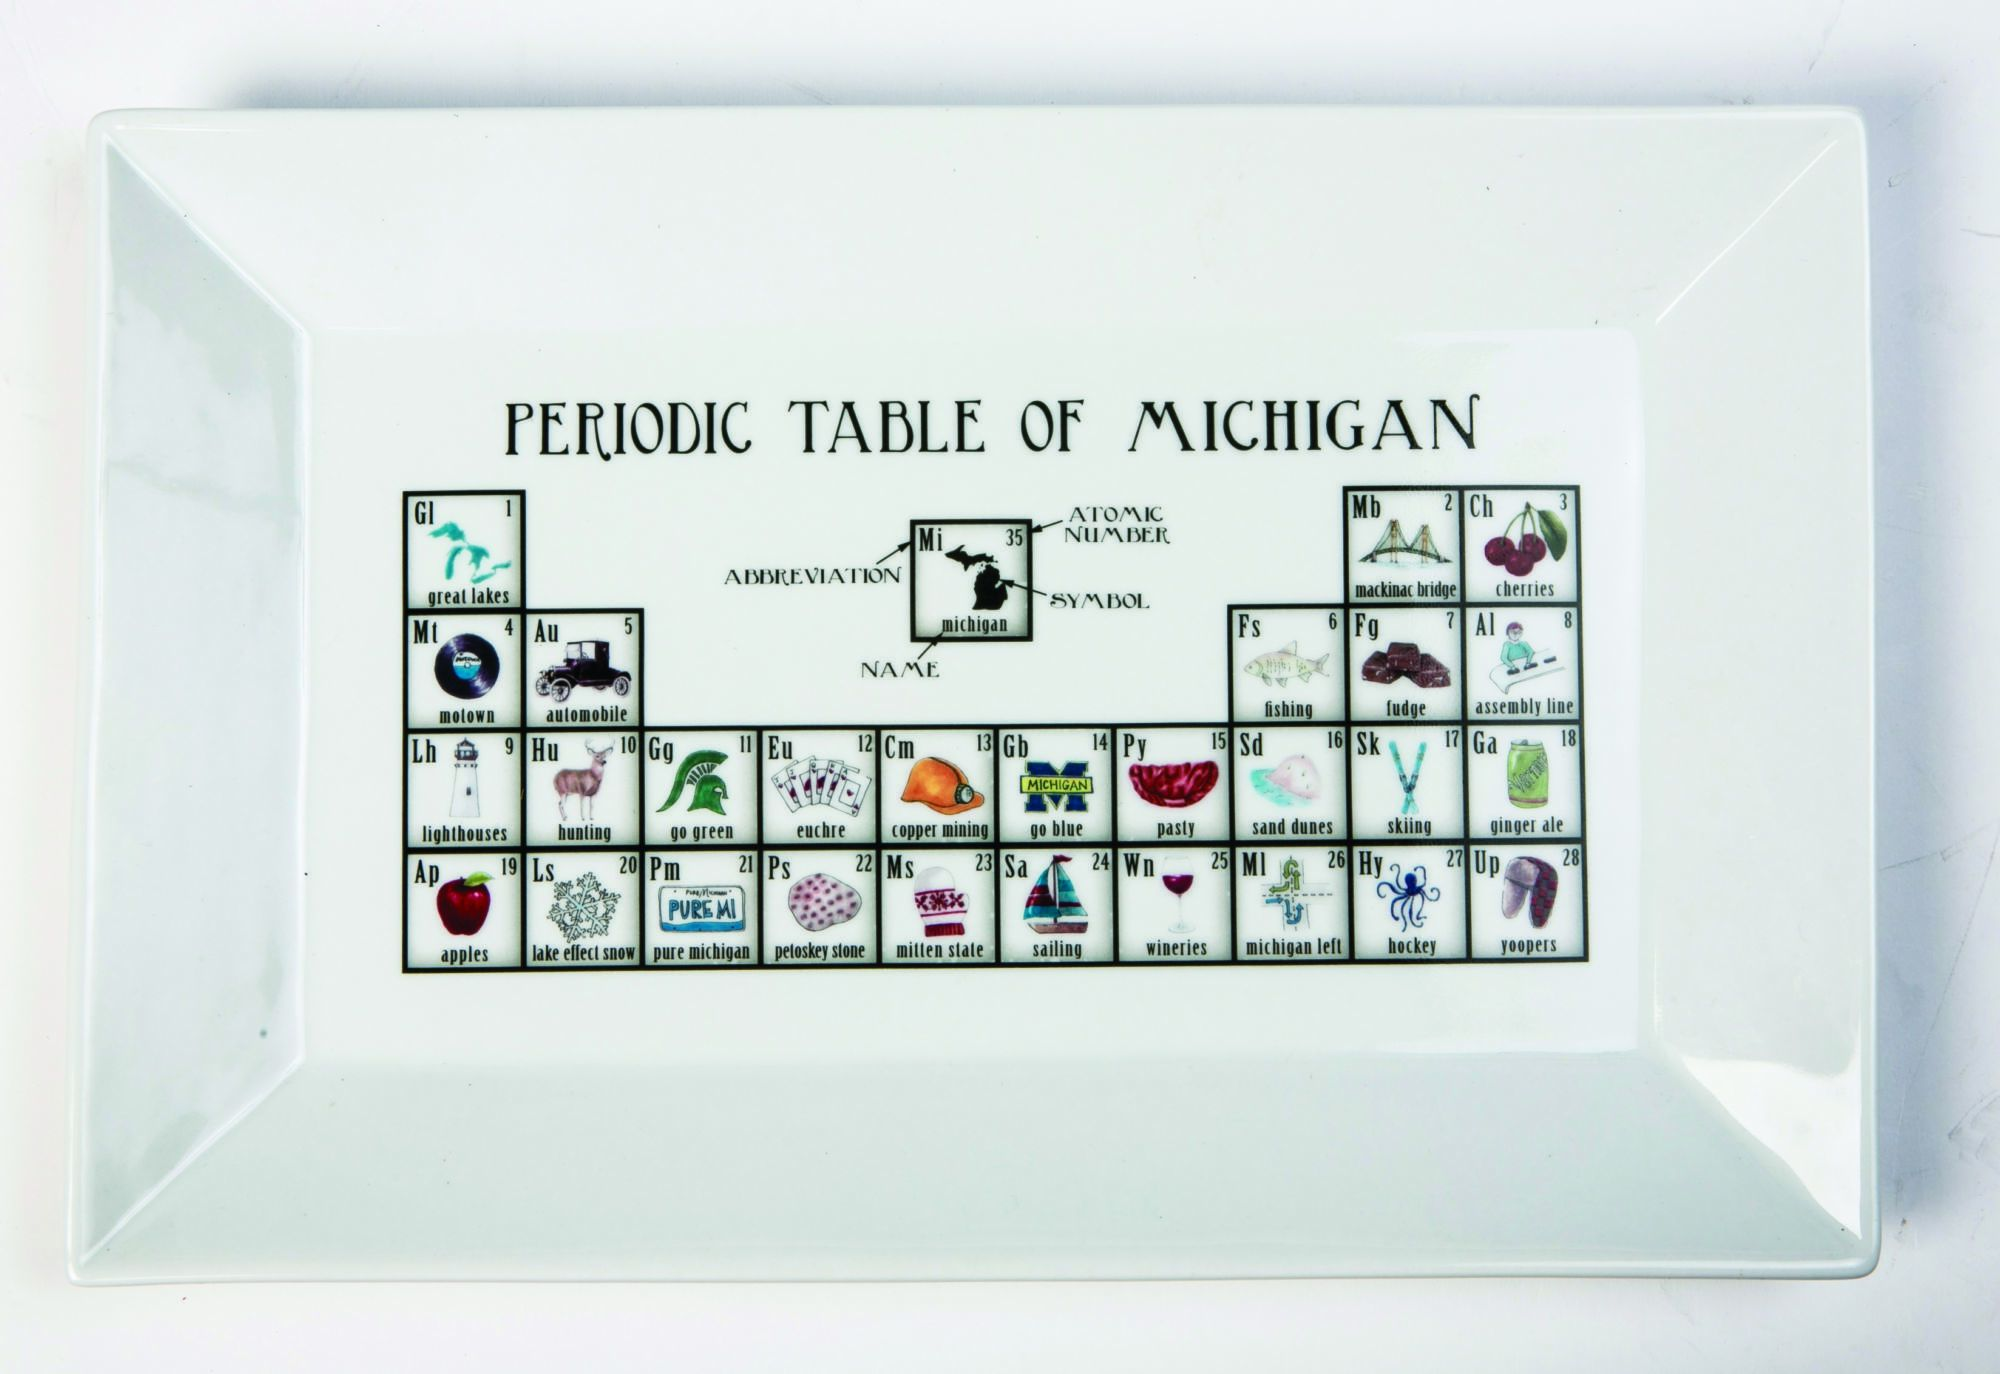 Northern michigan gift guide for michiganders mynorth periodic table of michigan tray gamestrikefo Choice Image